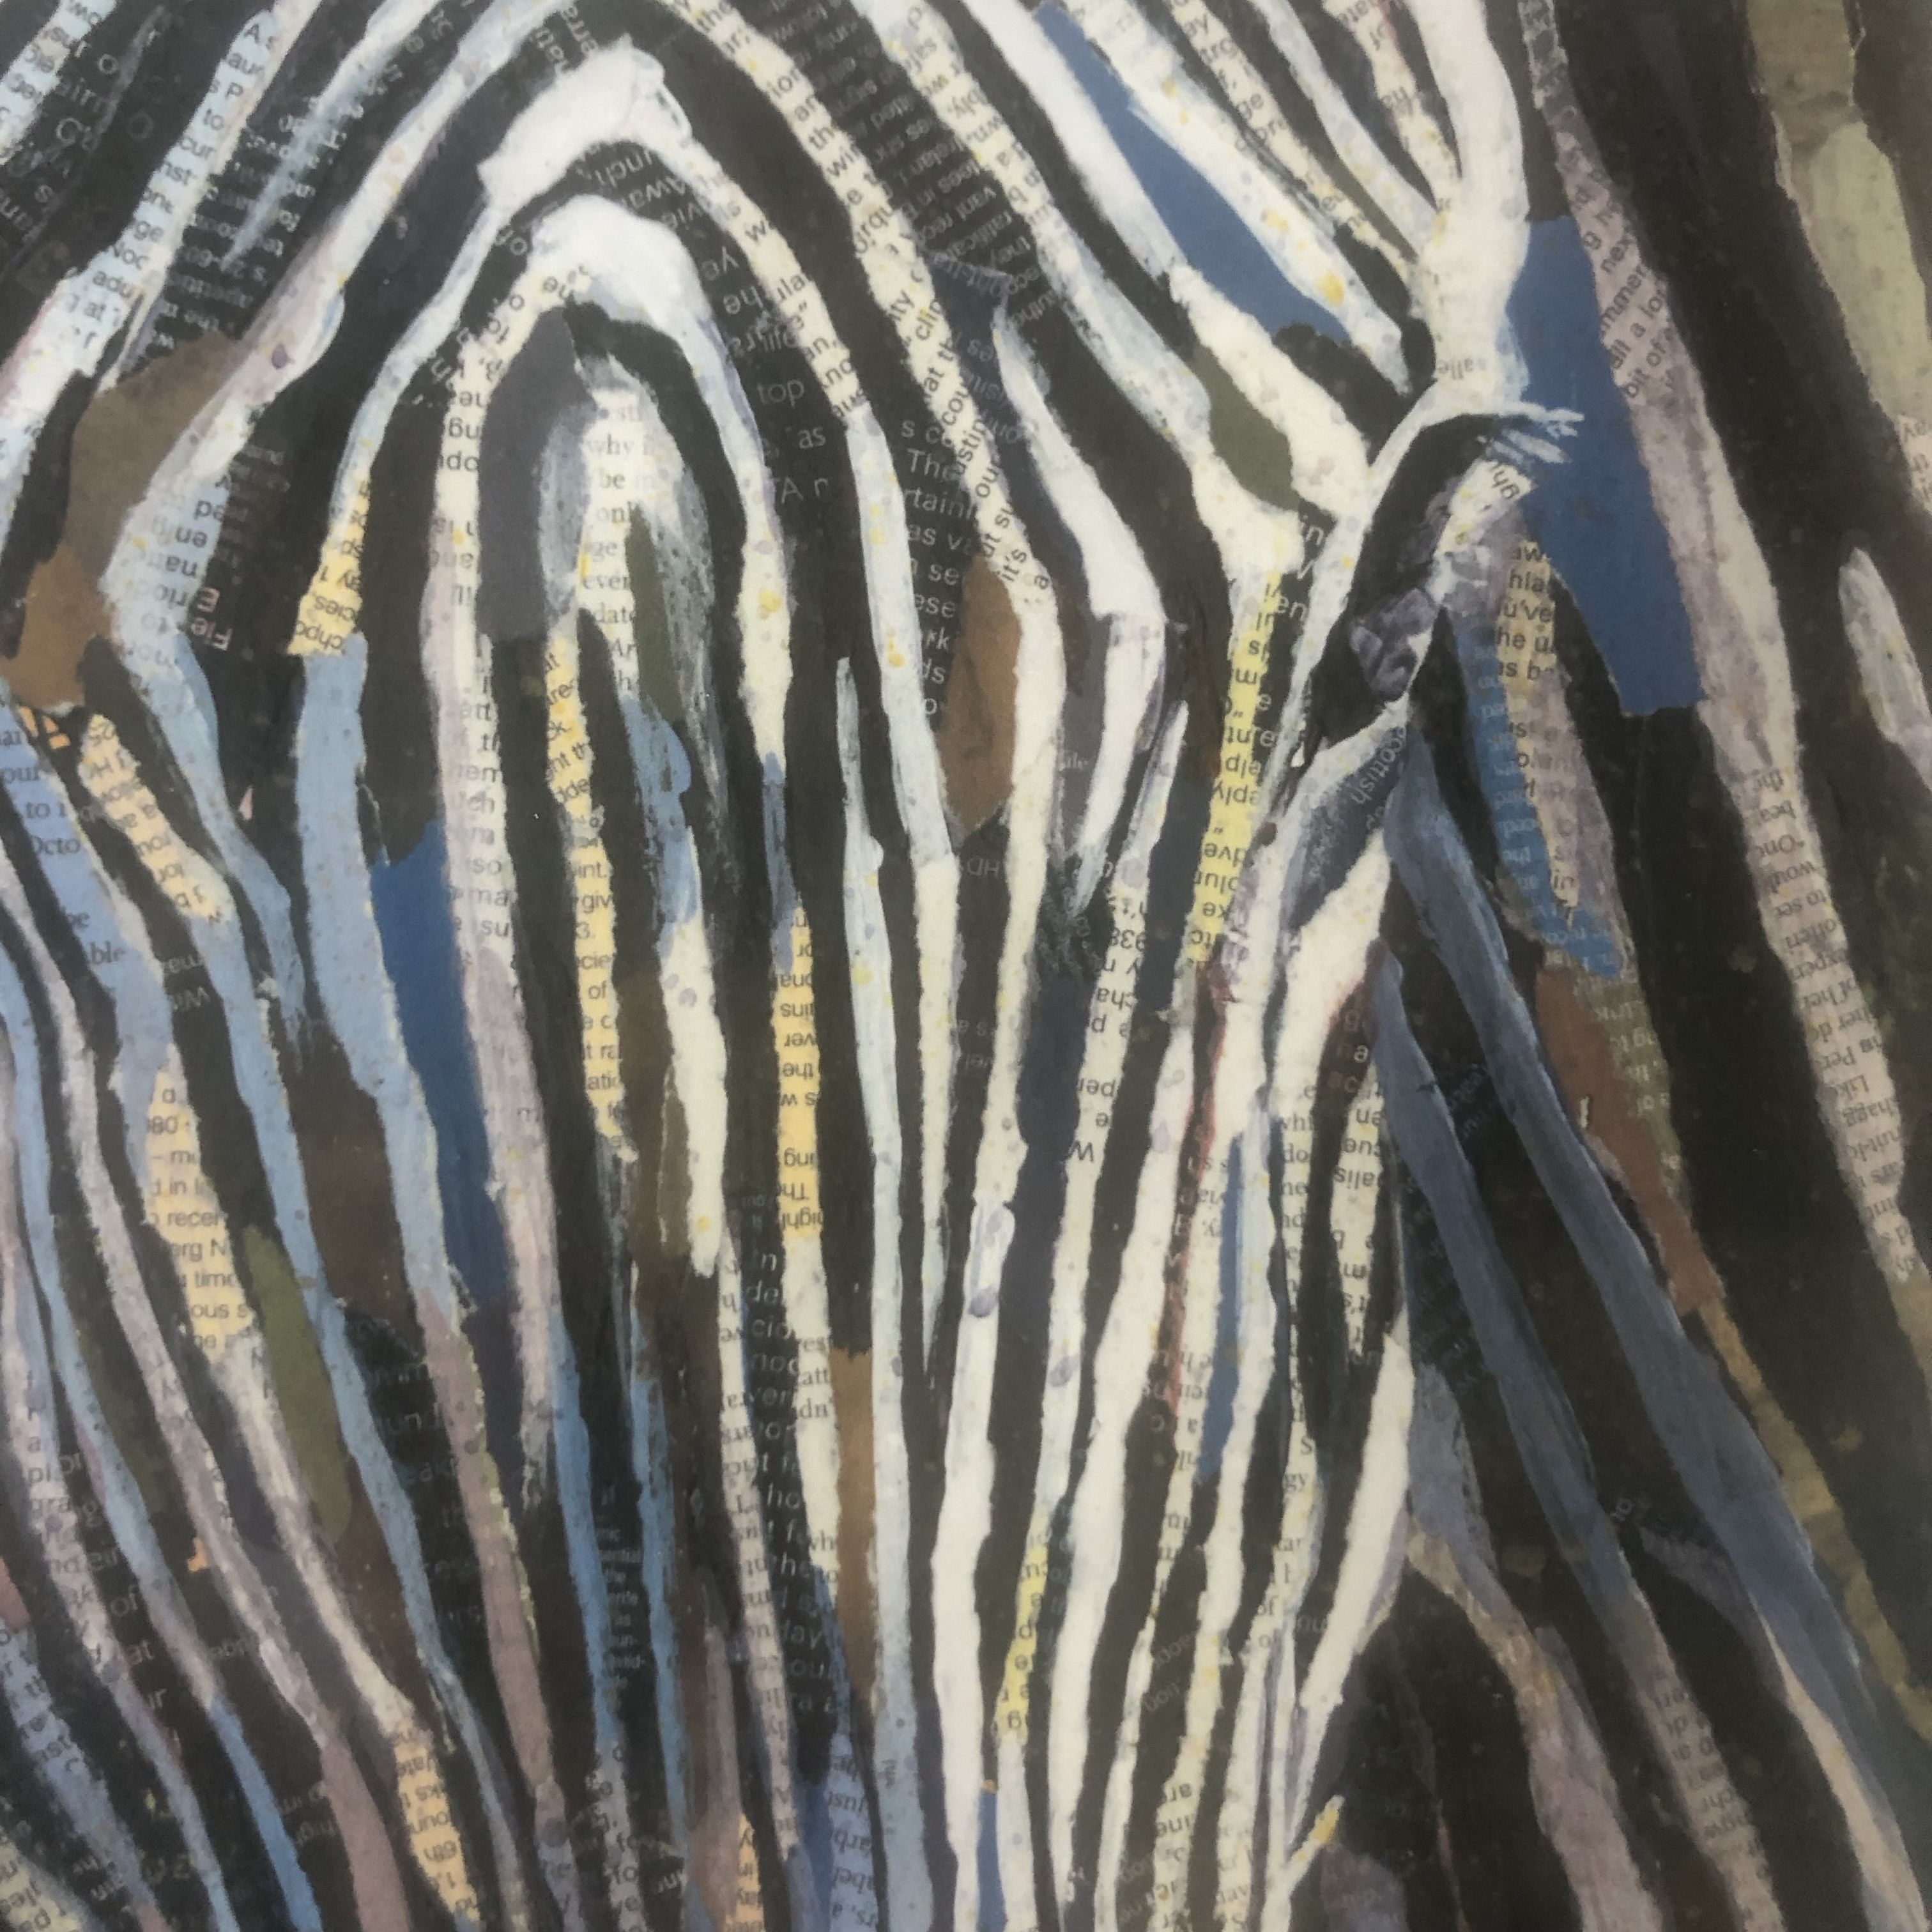 Merging lines is a limited edition print is a run of 100 prints, featuring a beautiful zebra.